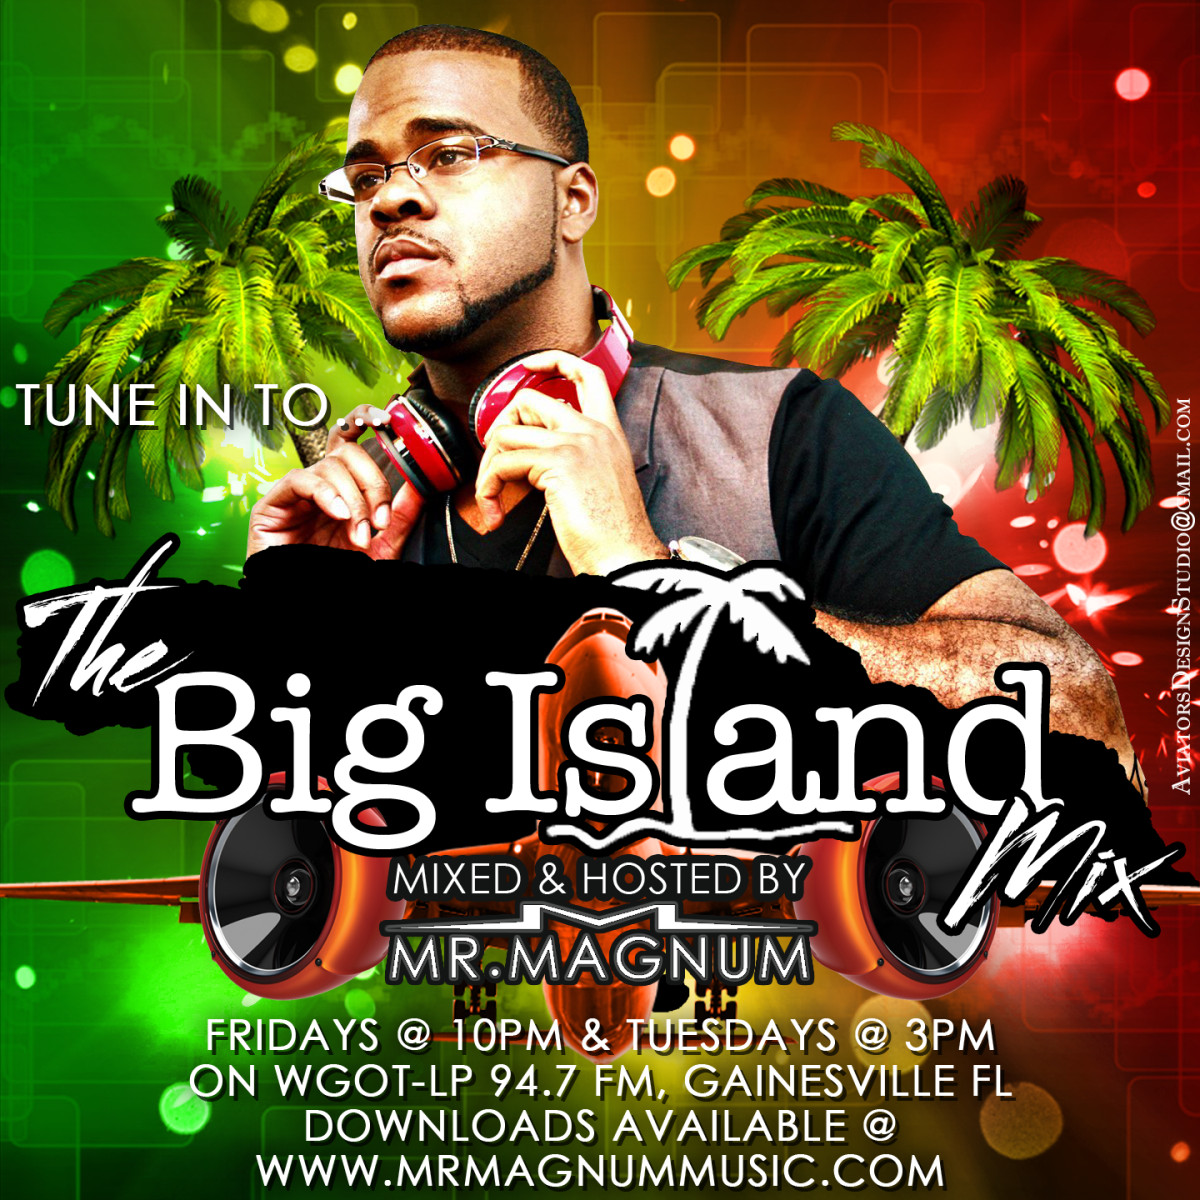 The Big Island Mix S0101 - The Warm Up